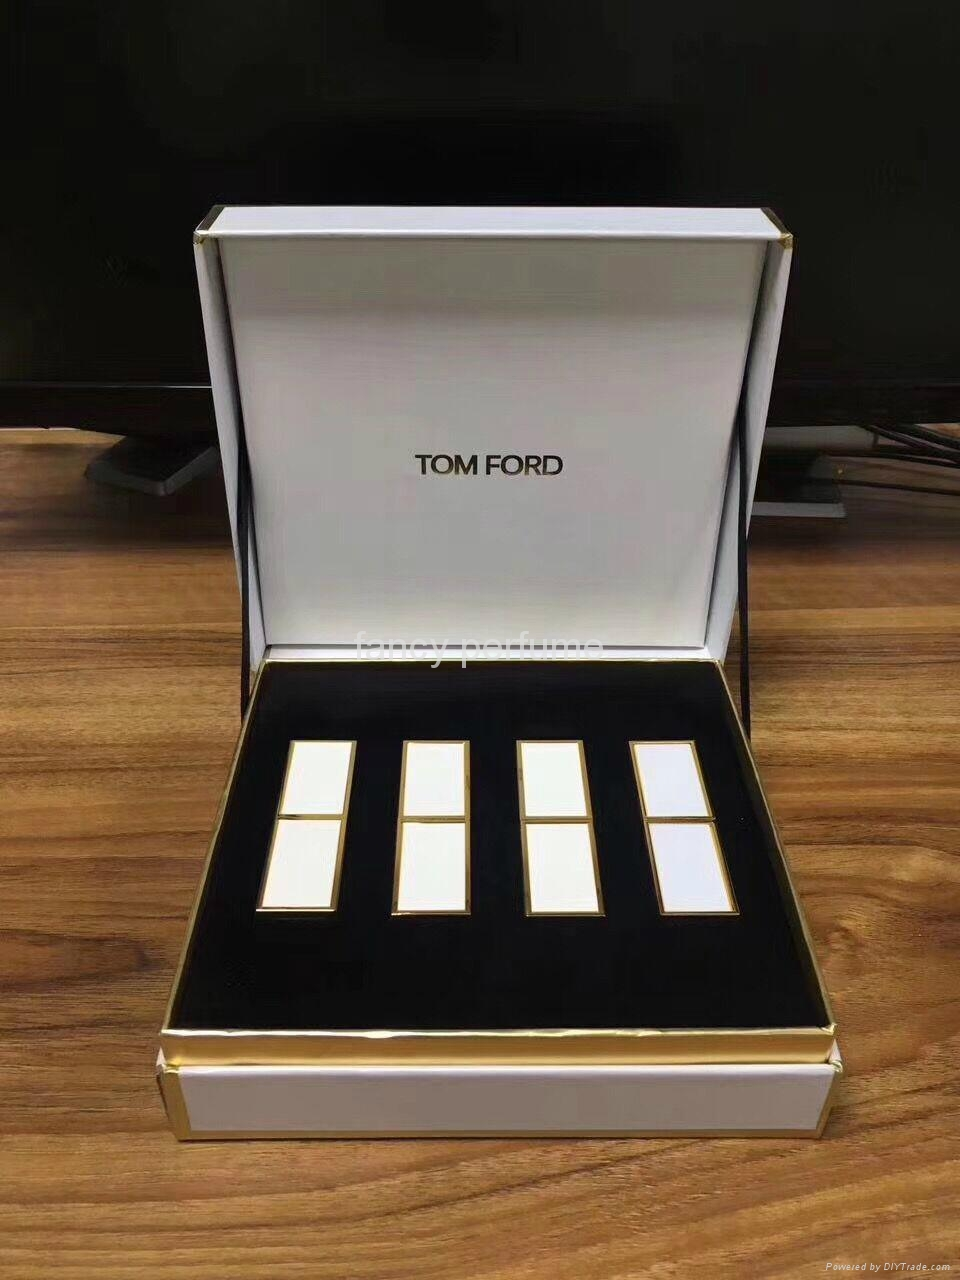 tom ford lipstick gift sets for lady 1 to 1 quality Aluminum tube 2